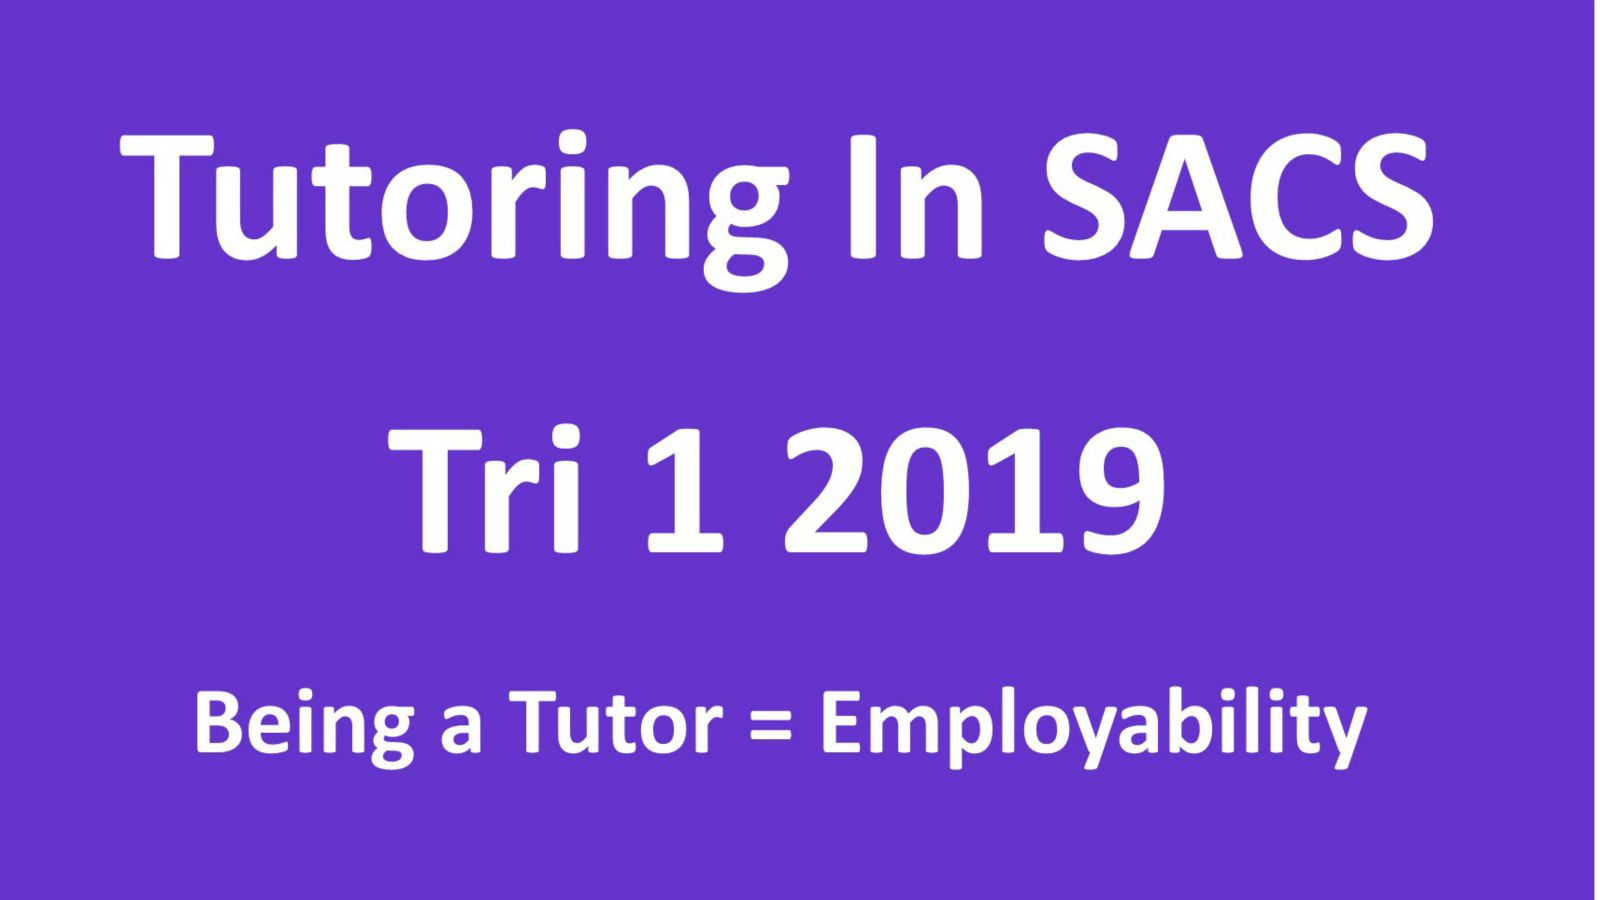 Applications for tutoring poster